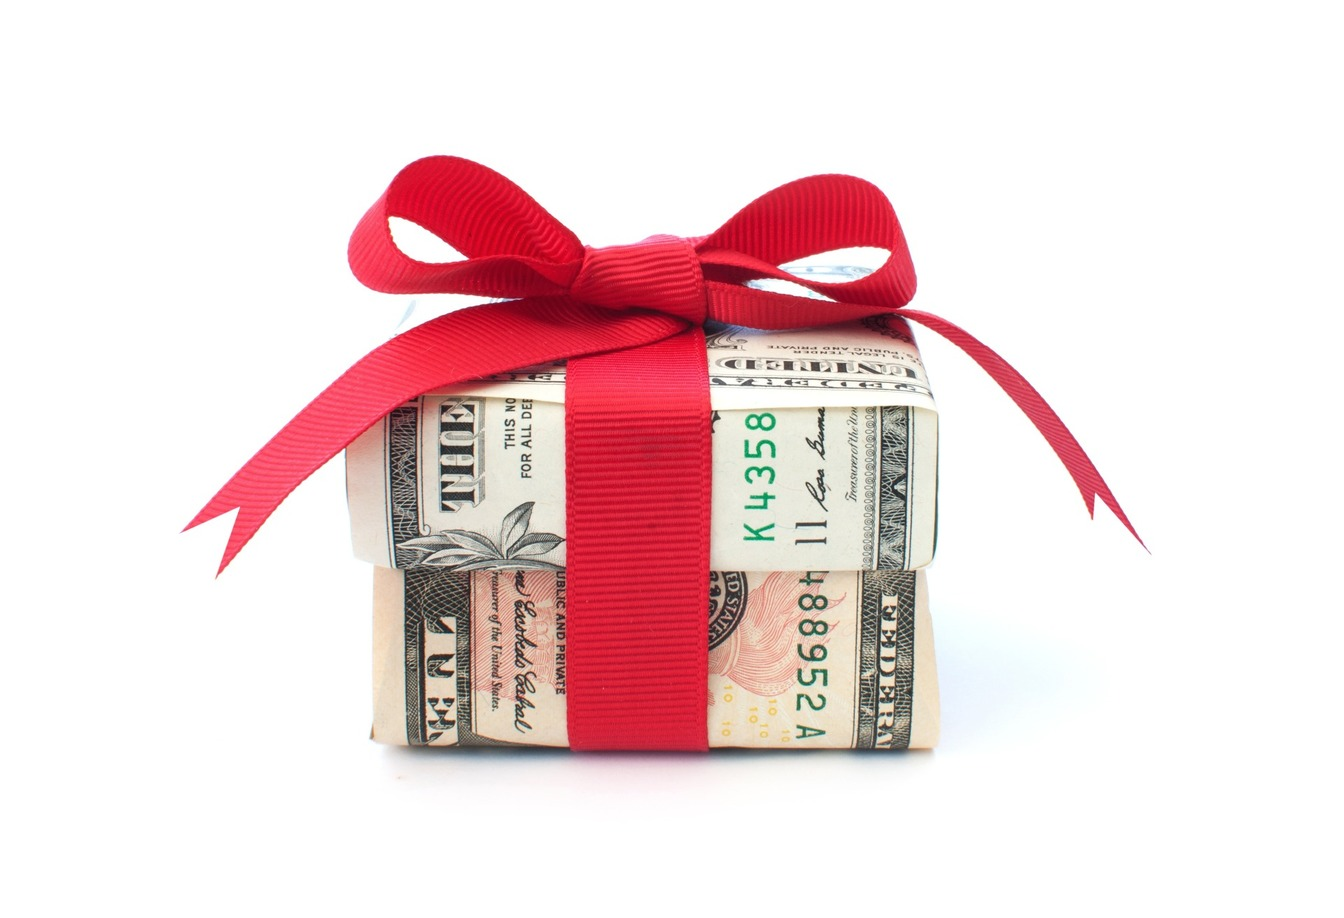 A present made of money and wrapped in red ribbon